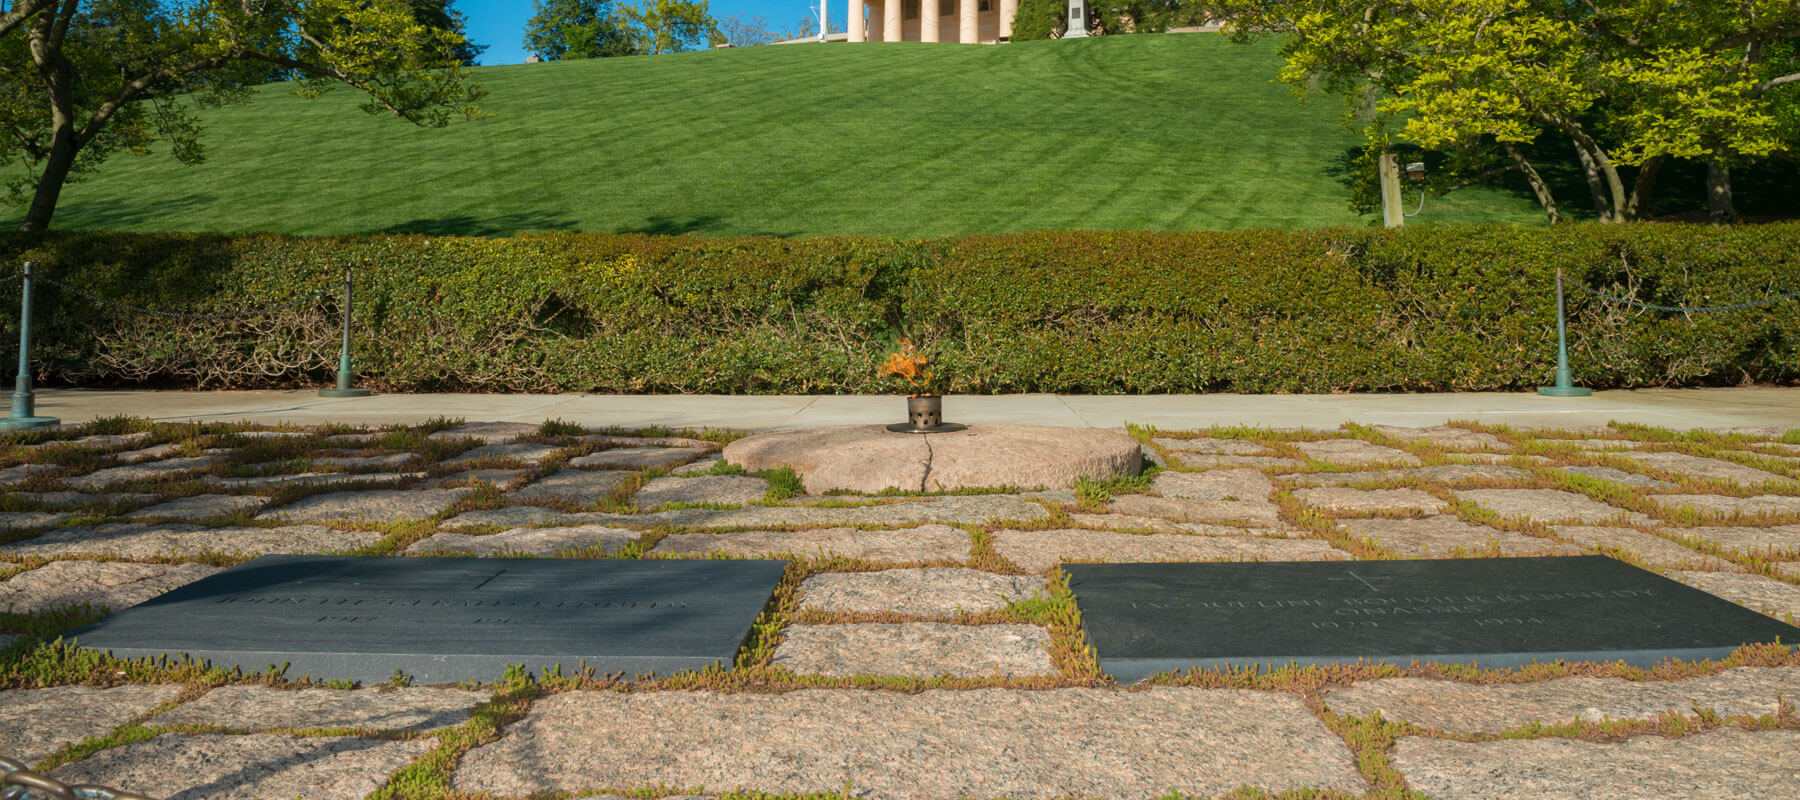 front view of John F Kennedy gravesite marked by two plaques on the ground and an eternal flame in front of plaques